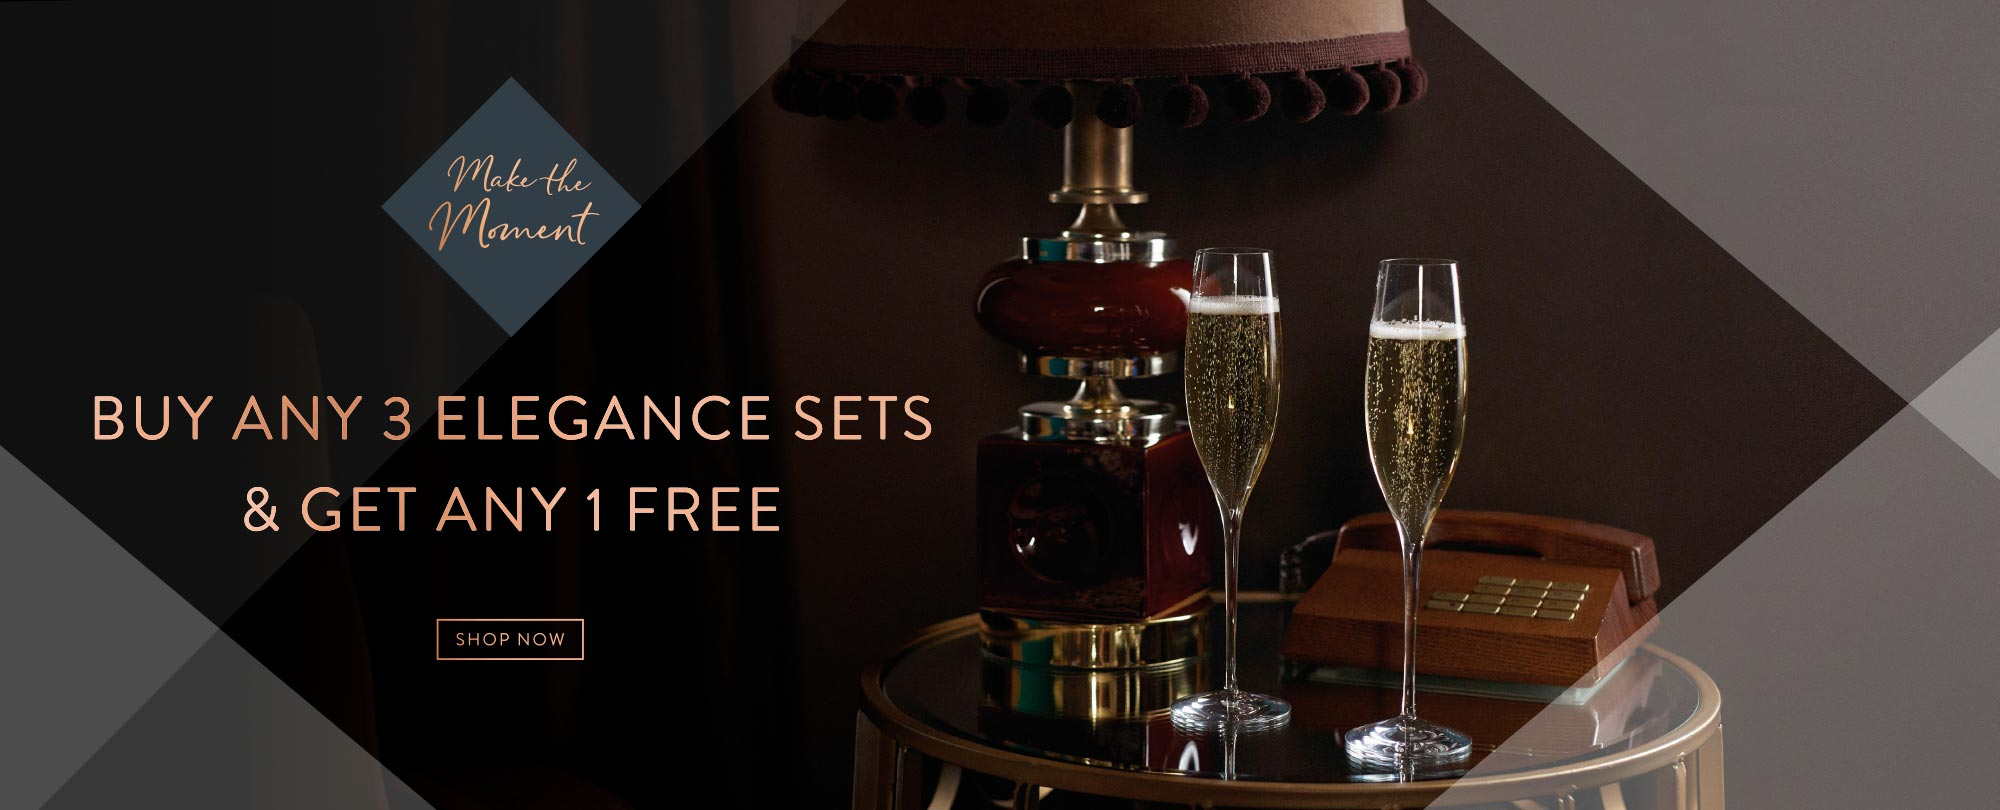 Elegance Special Offer Main March 19th